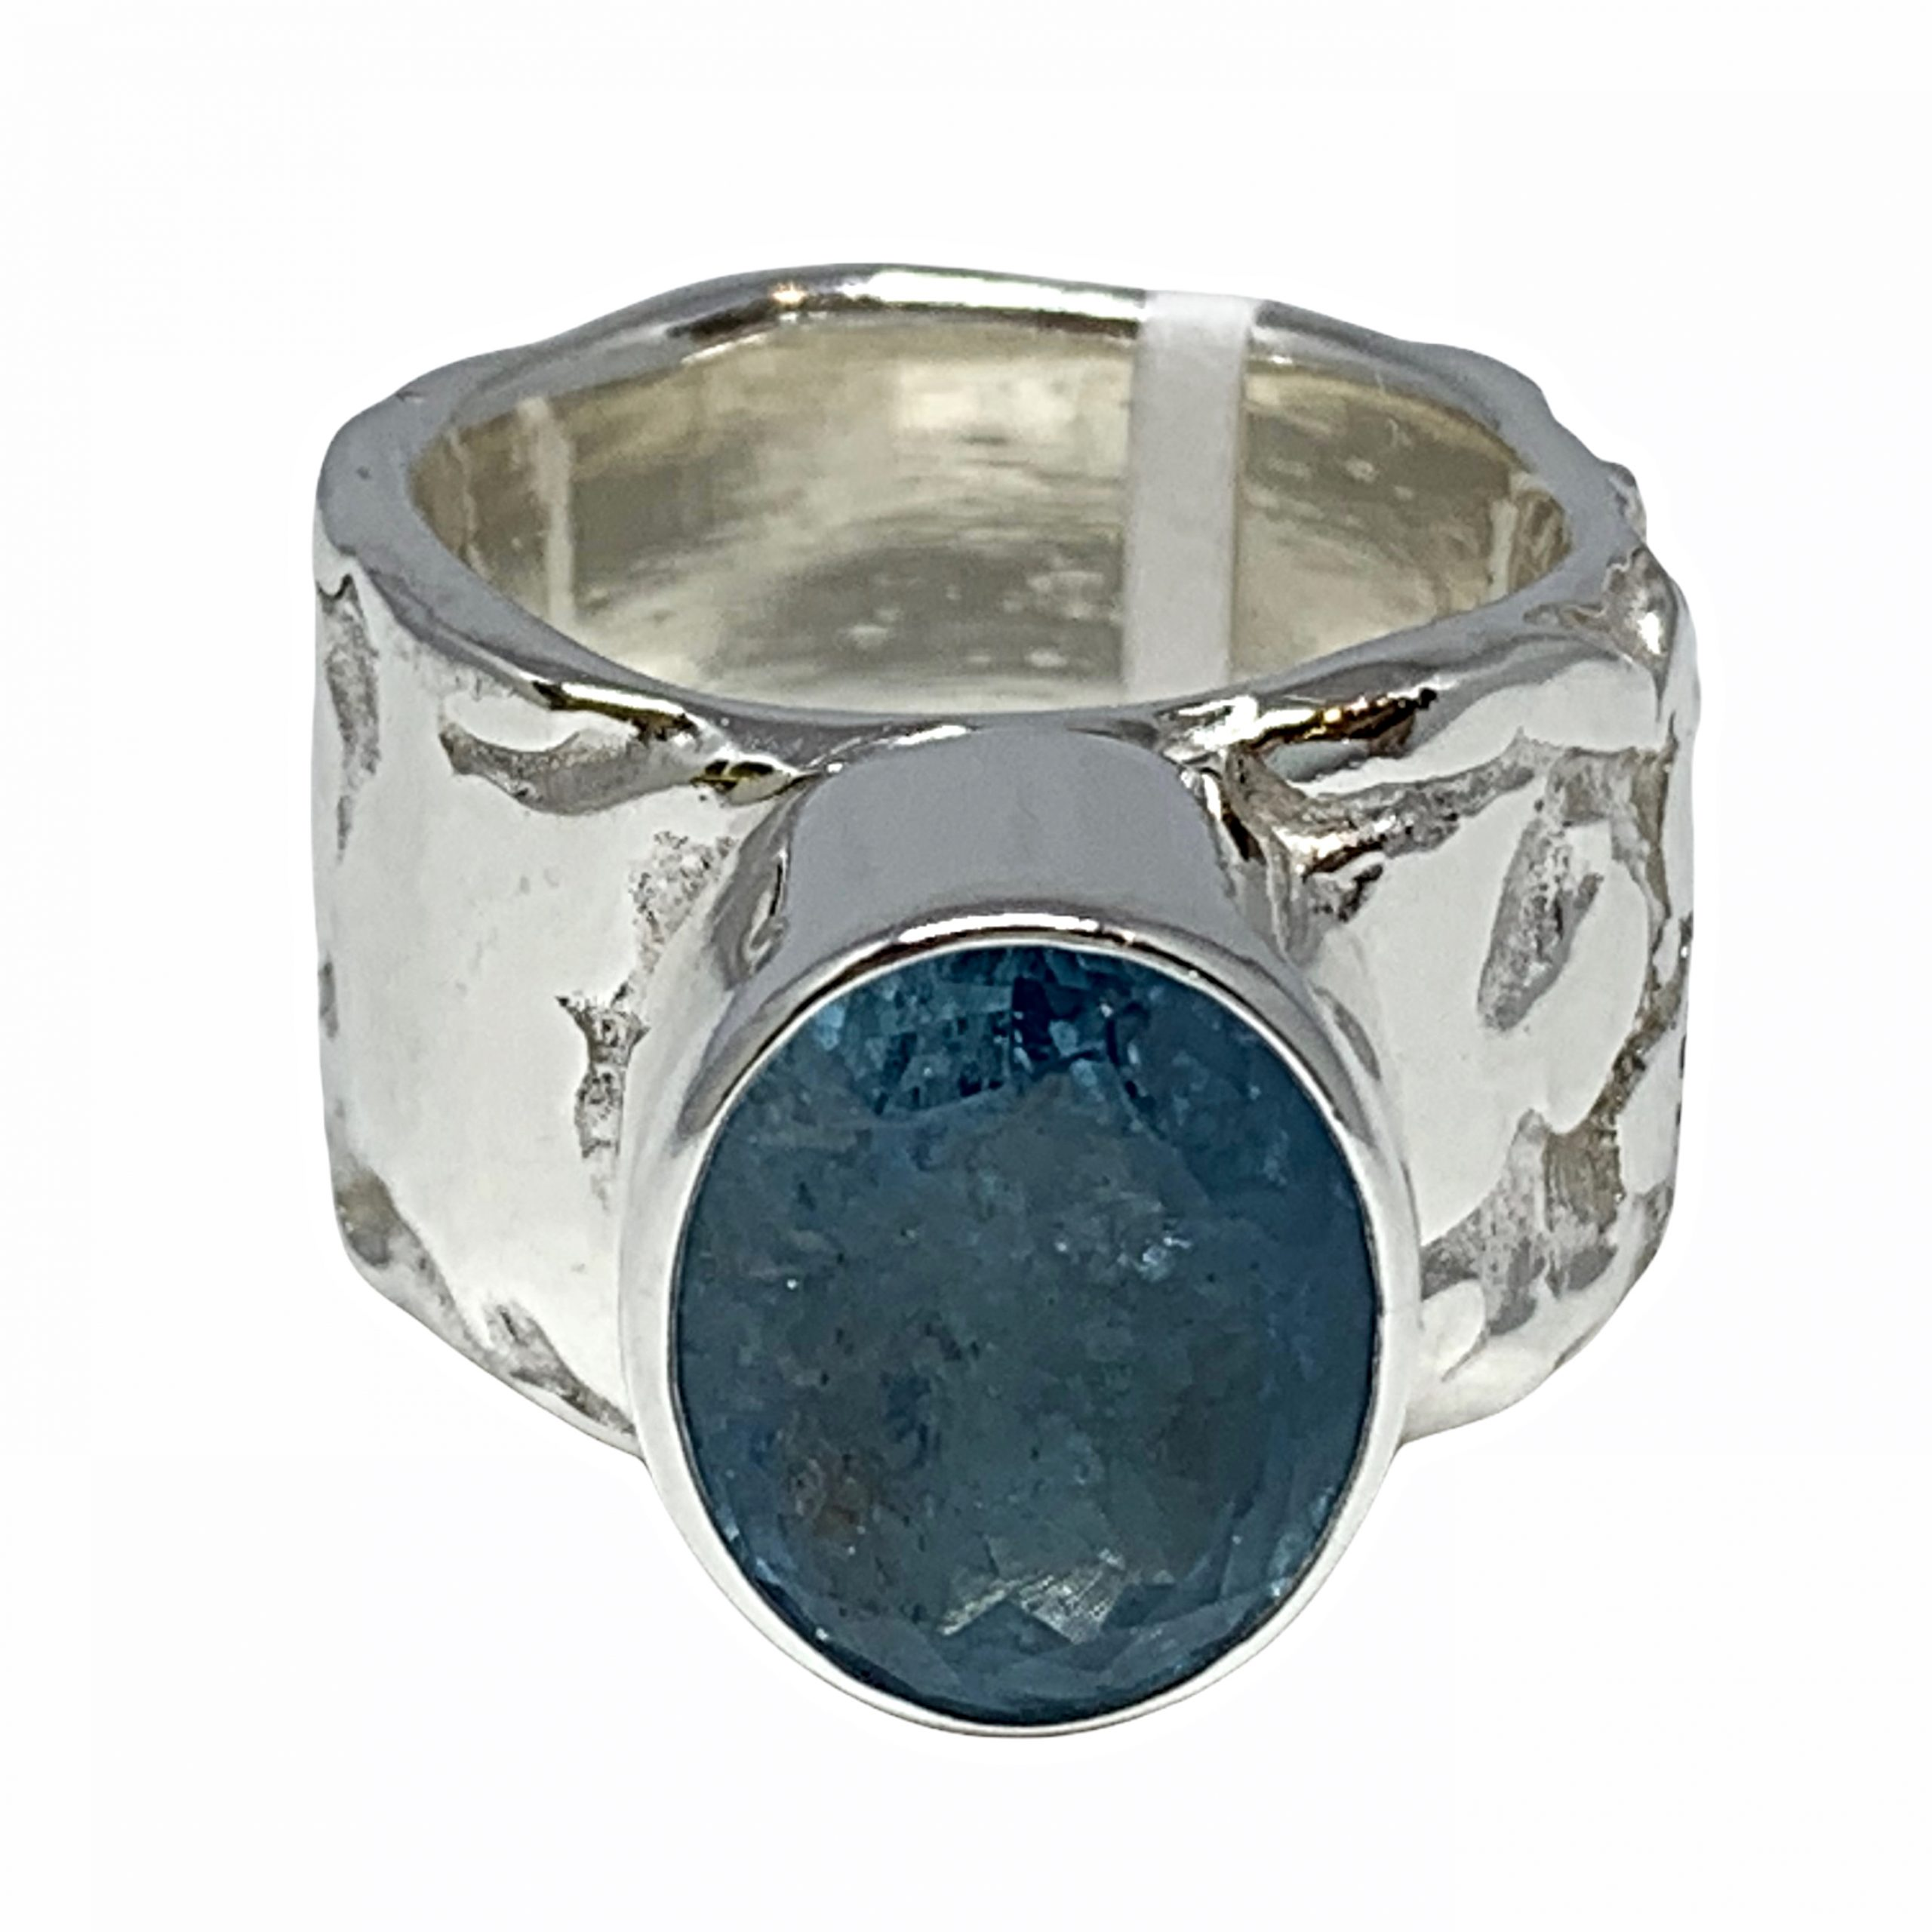 Sterling silver and aquamarine ring by A&R Jewellery | Effusion Art Gallery + Cast Glass Studio, Invermere BC